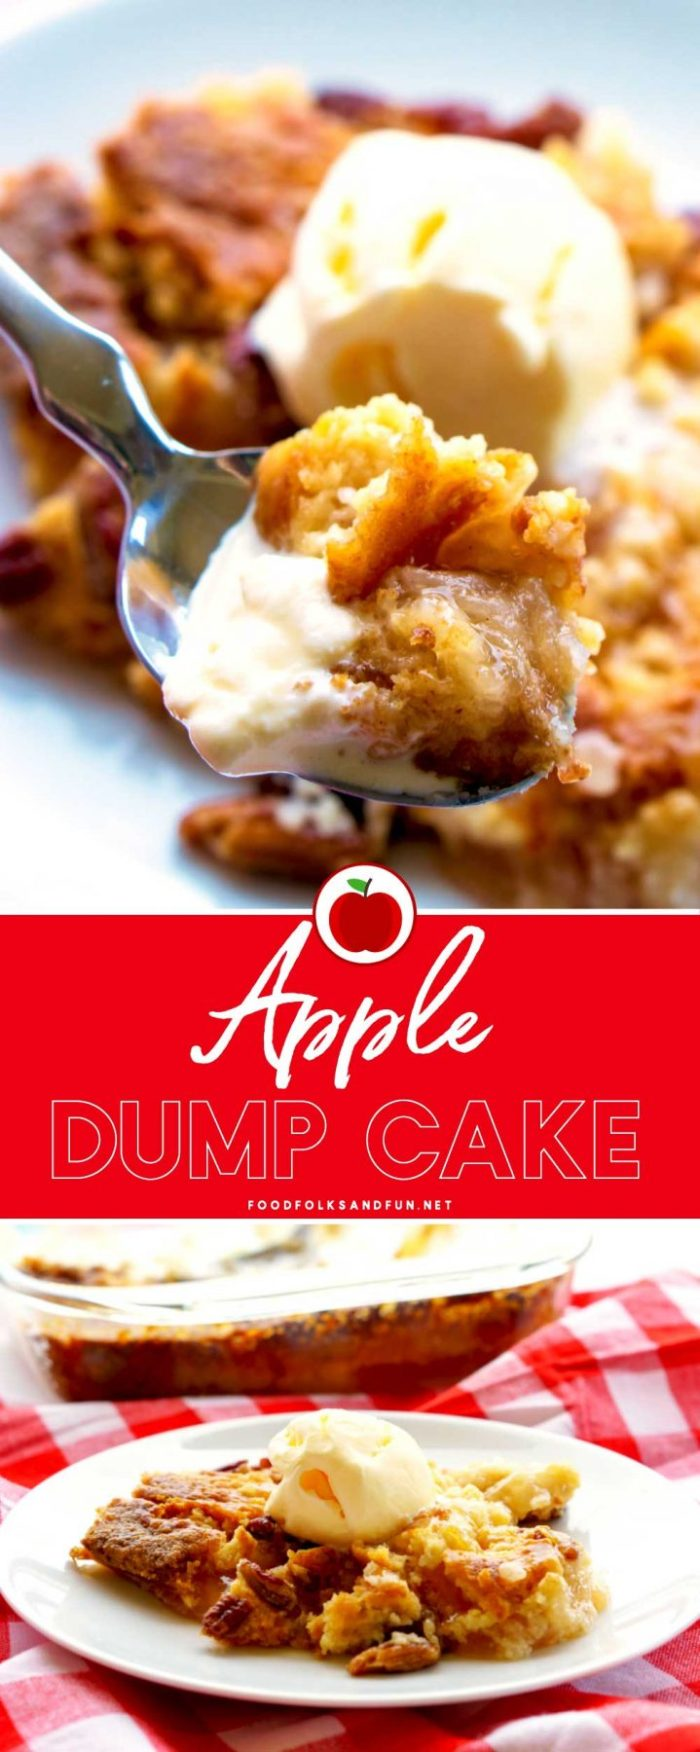 Apple Dump Cake is an easy and irresistible Fall dessert that's made with just 4 ingredients: apple pie filling, cake mix, pecans, and butter!